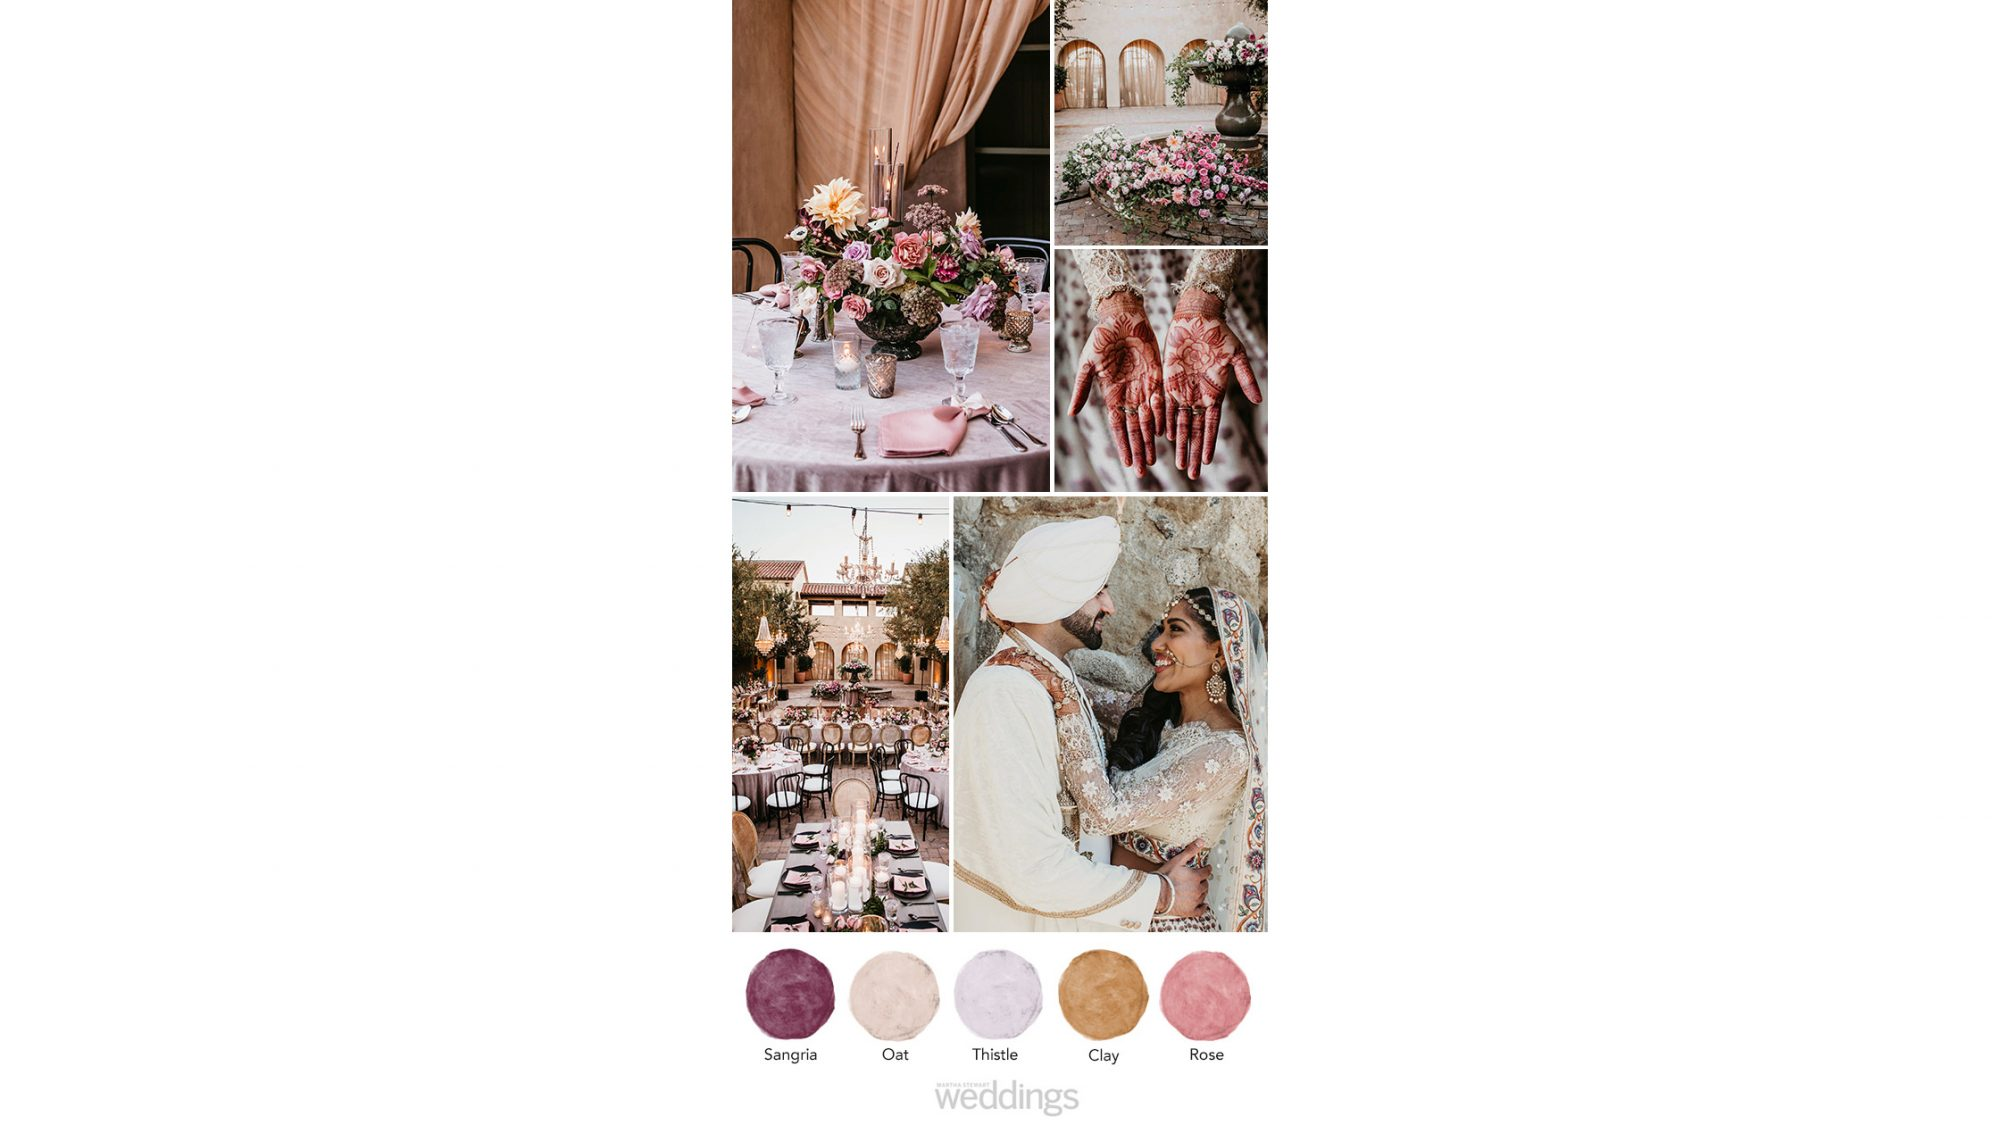 mauve-centric wedding color palette ideas